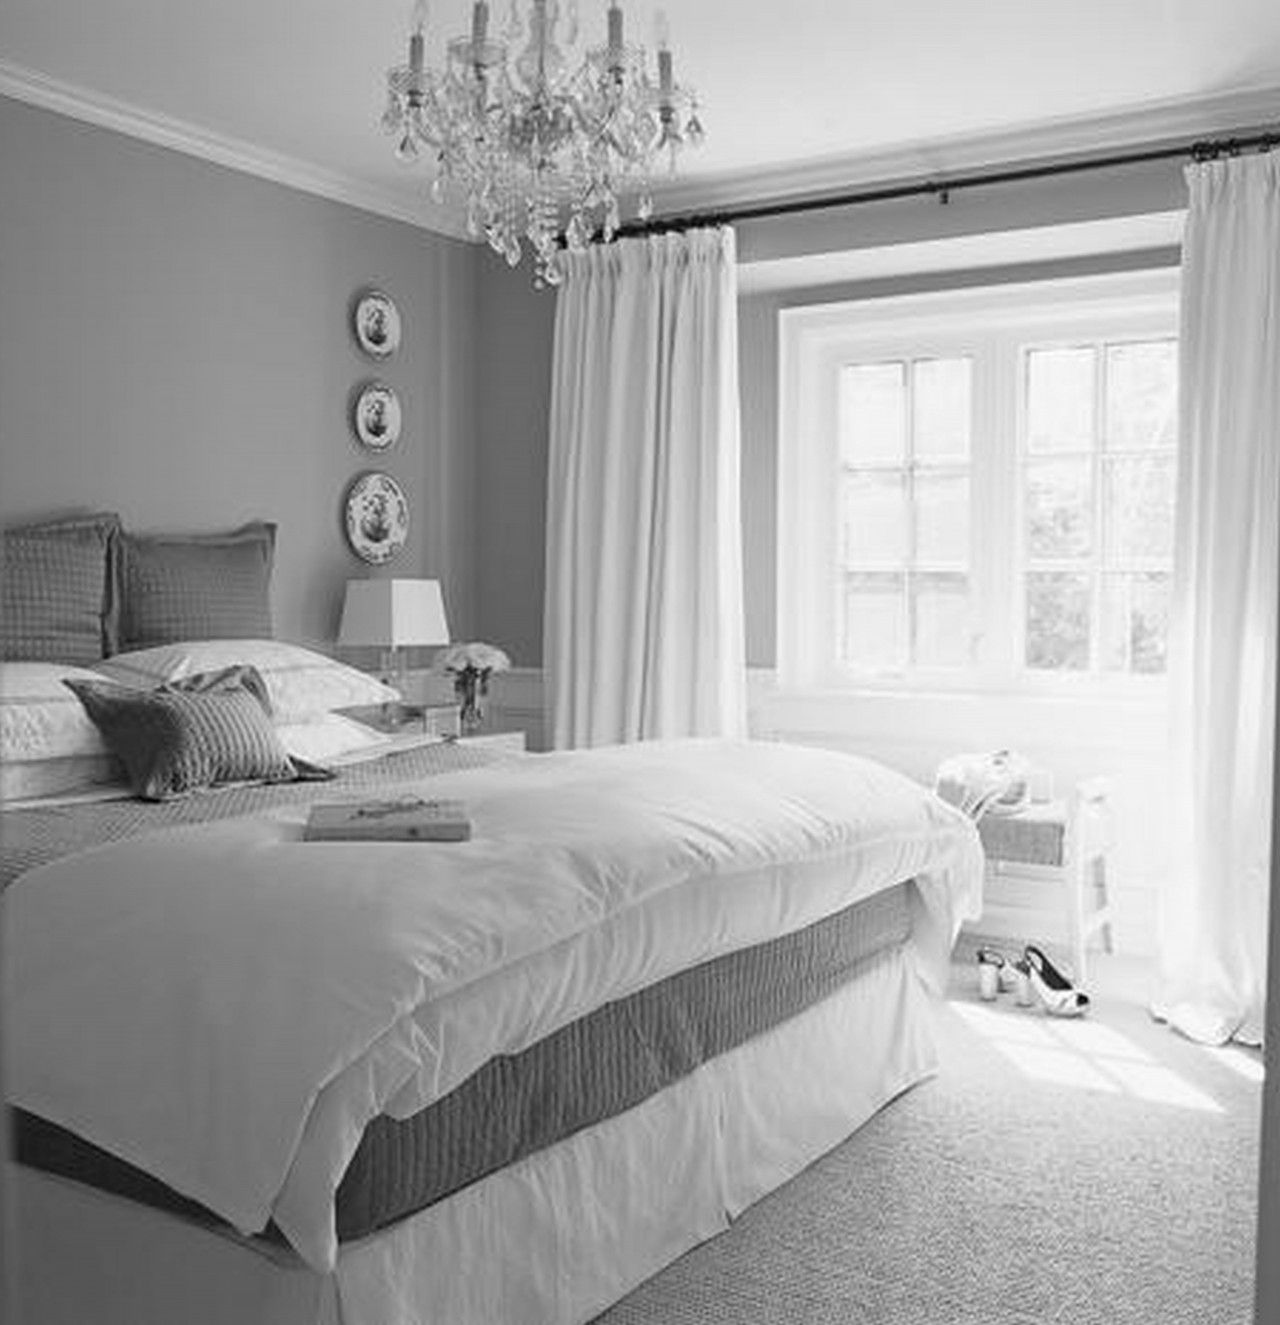 Related Image White Bedroom Furniture Grey Walls Curtains Bedrooms Small